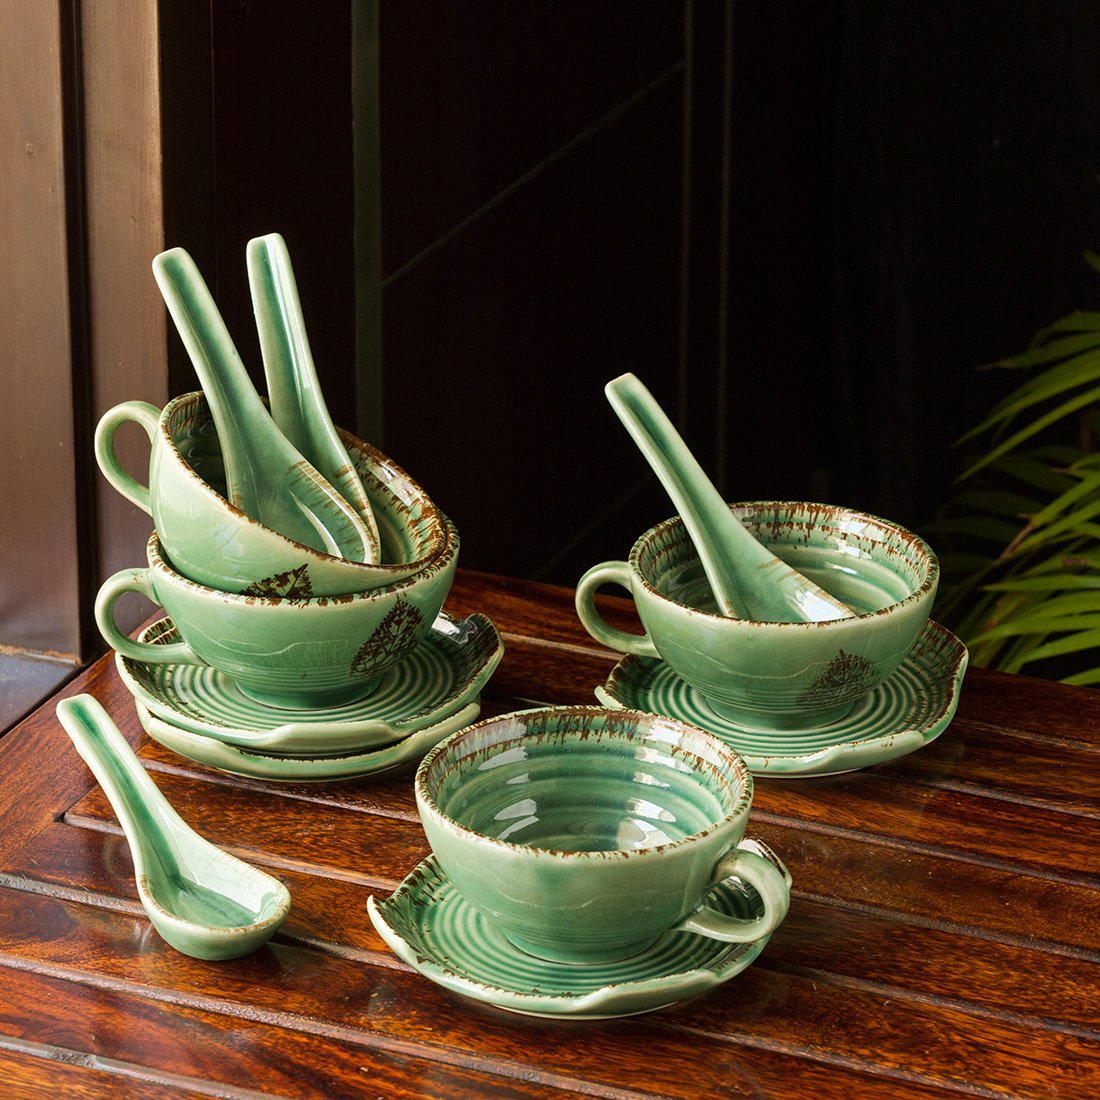 Moorni Banyan Leaves Hand-painted Studio Pottery Soup Bowls With Saucers & Spoons In Ceramic (Set of 4, Microwave Safe)